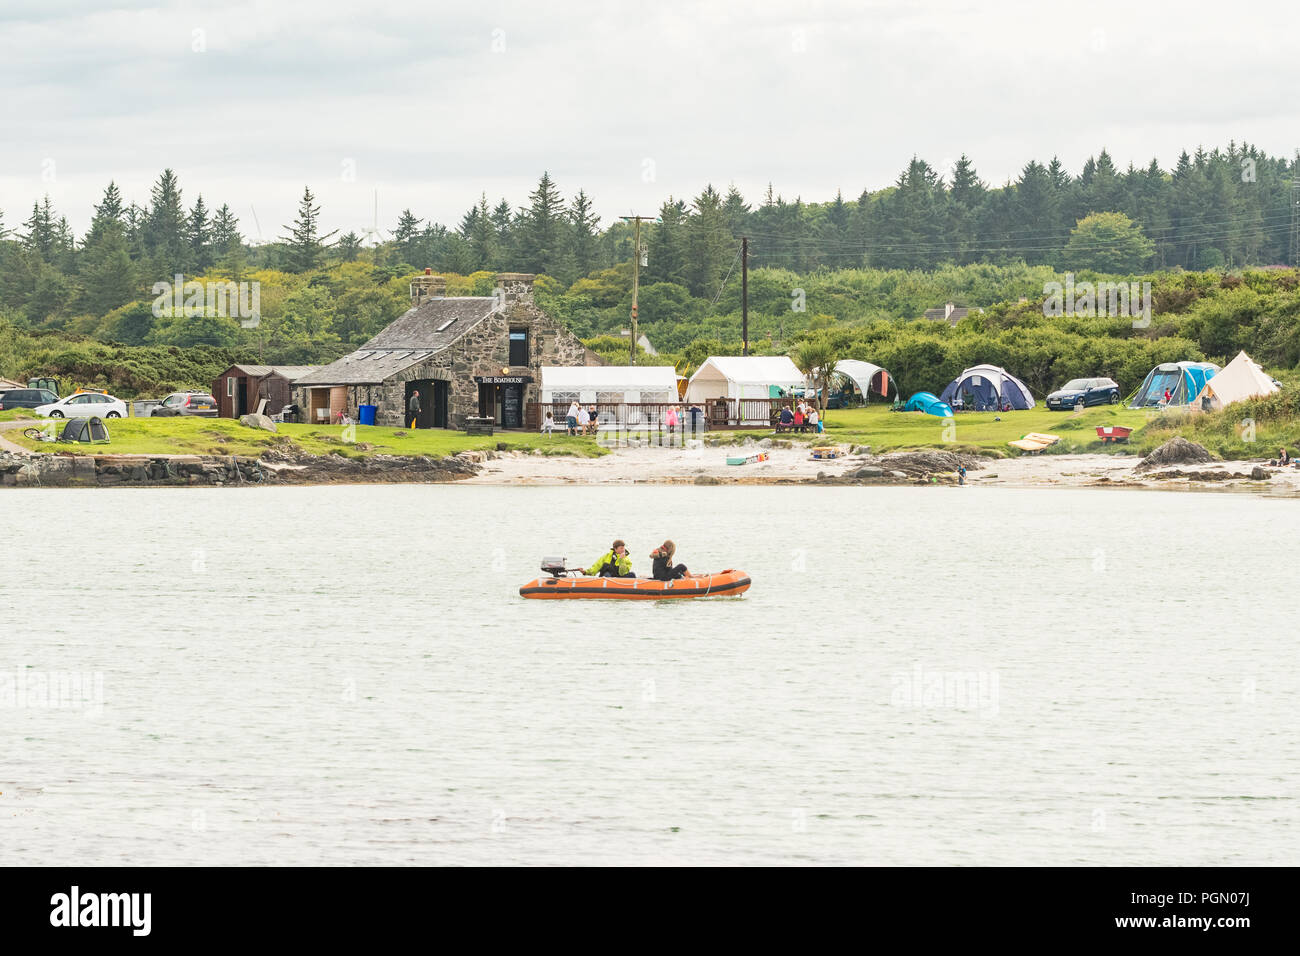 Isle of Gigha - A small dingy sailing across Ardminish Bay, by The Boathouse seafood restaurant and small campsite, Argyll & The Isles, Scotland, UK - Stock Image